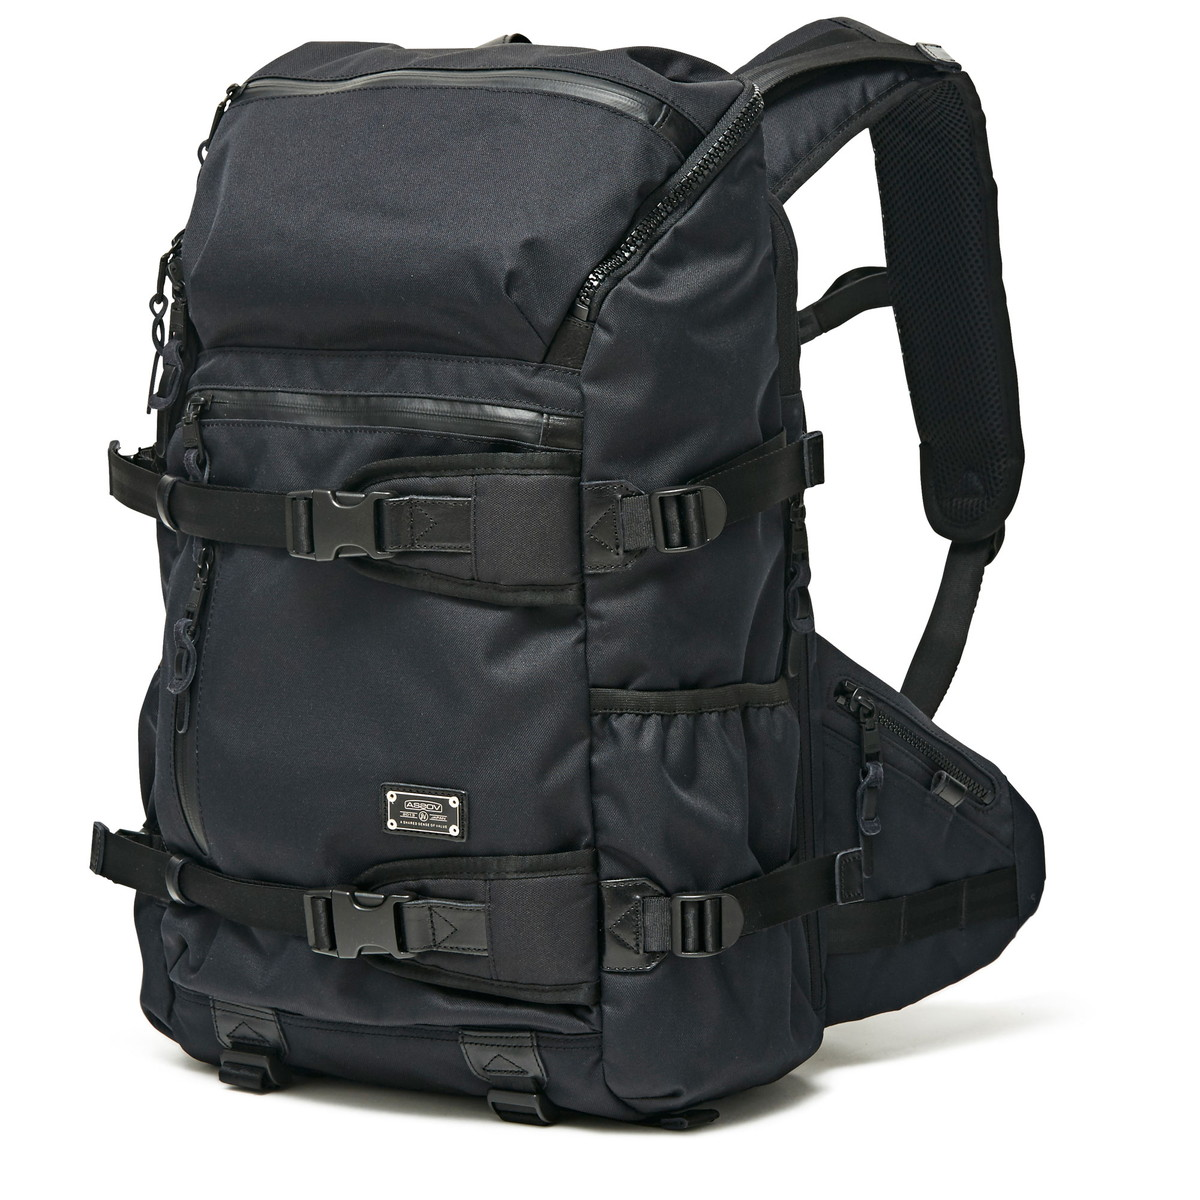 AS2OV公式通販 / AS2OV (アッソブ) バックパック リュックサック CORDURA DOBBY 305D ROUND ZIP BACK PACK BLACK 061409